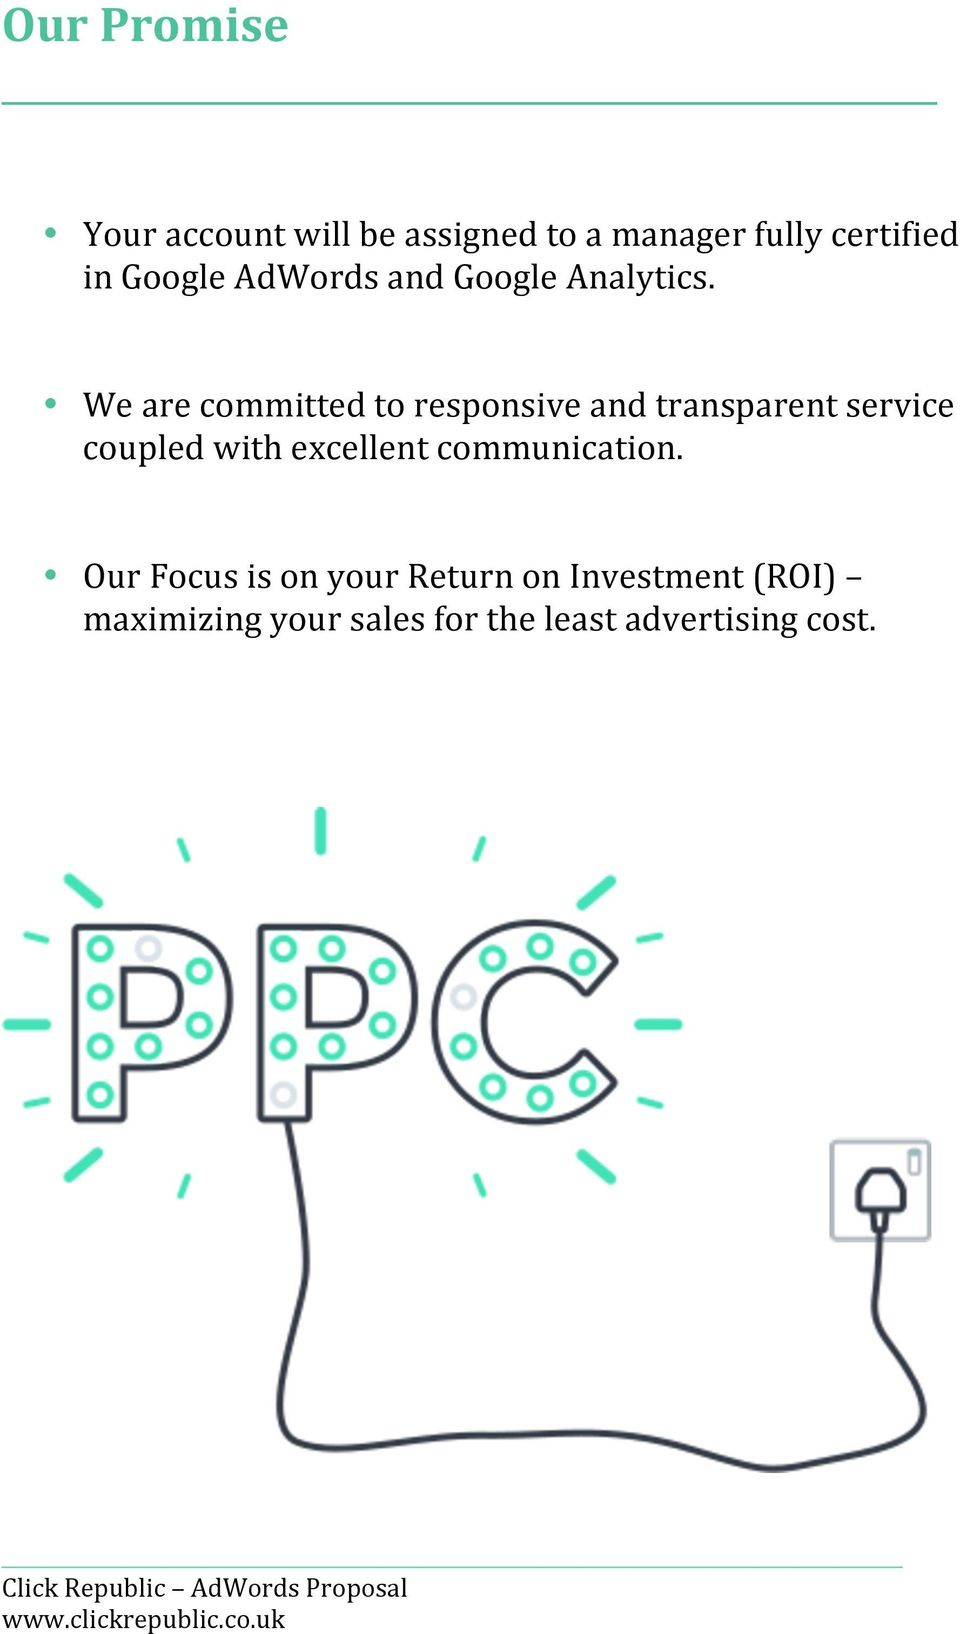 We are committed to responsive and transparent service coupled with